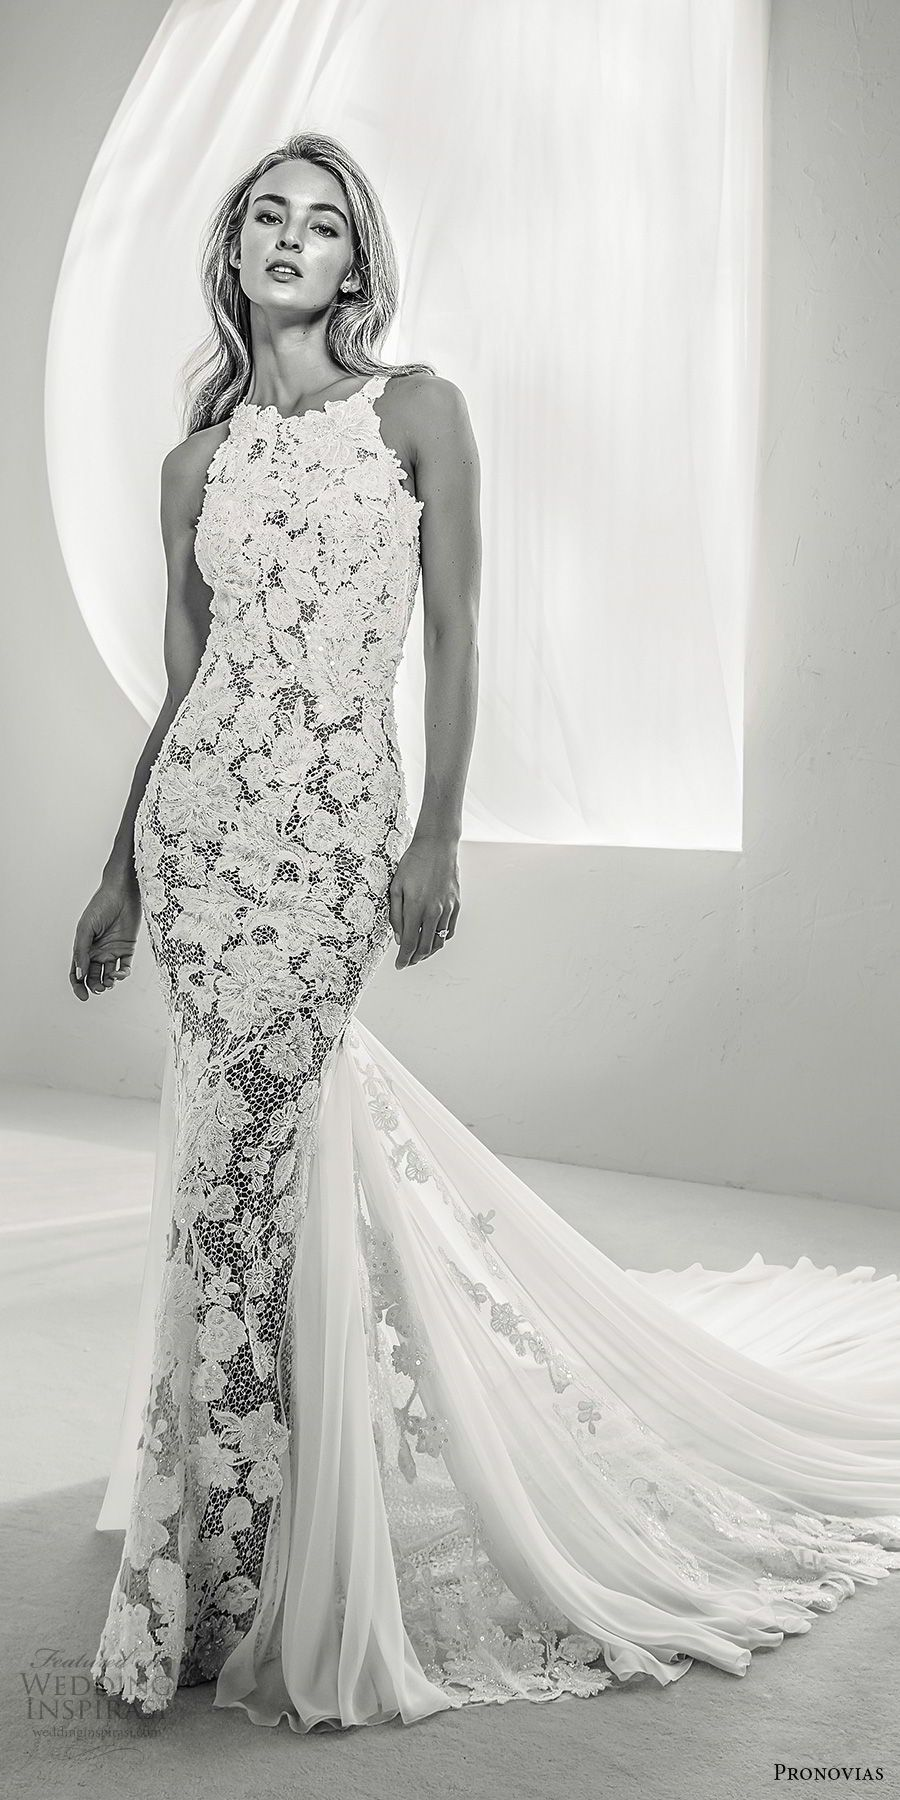 Atelier pronovias wedding dresses atelier pronovias atelier